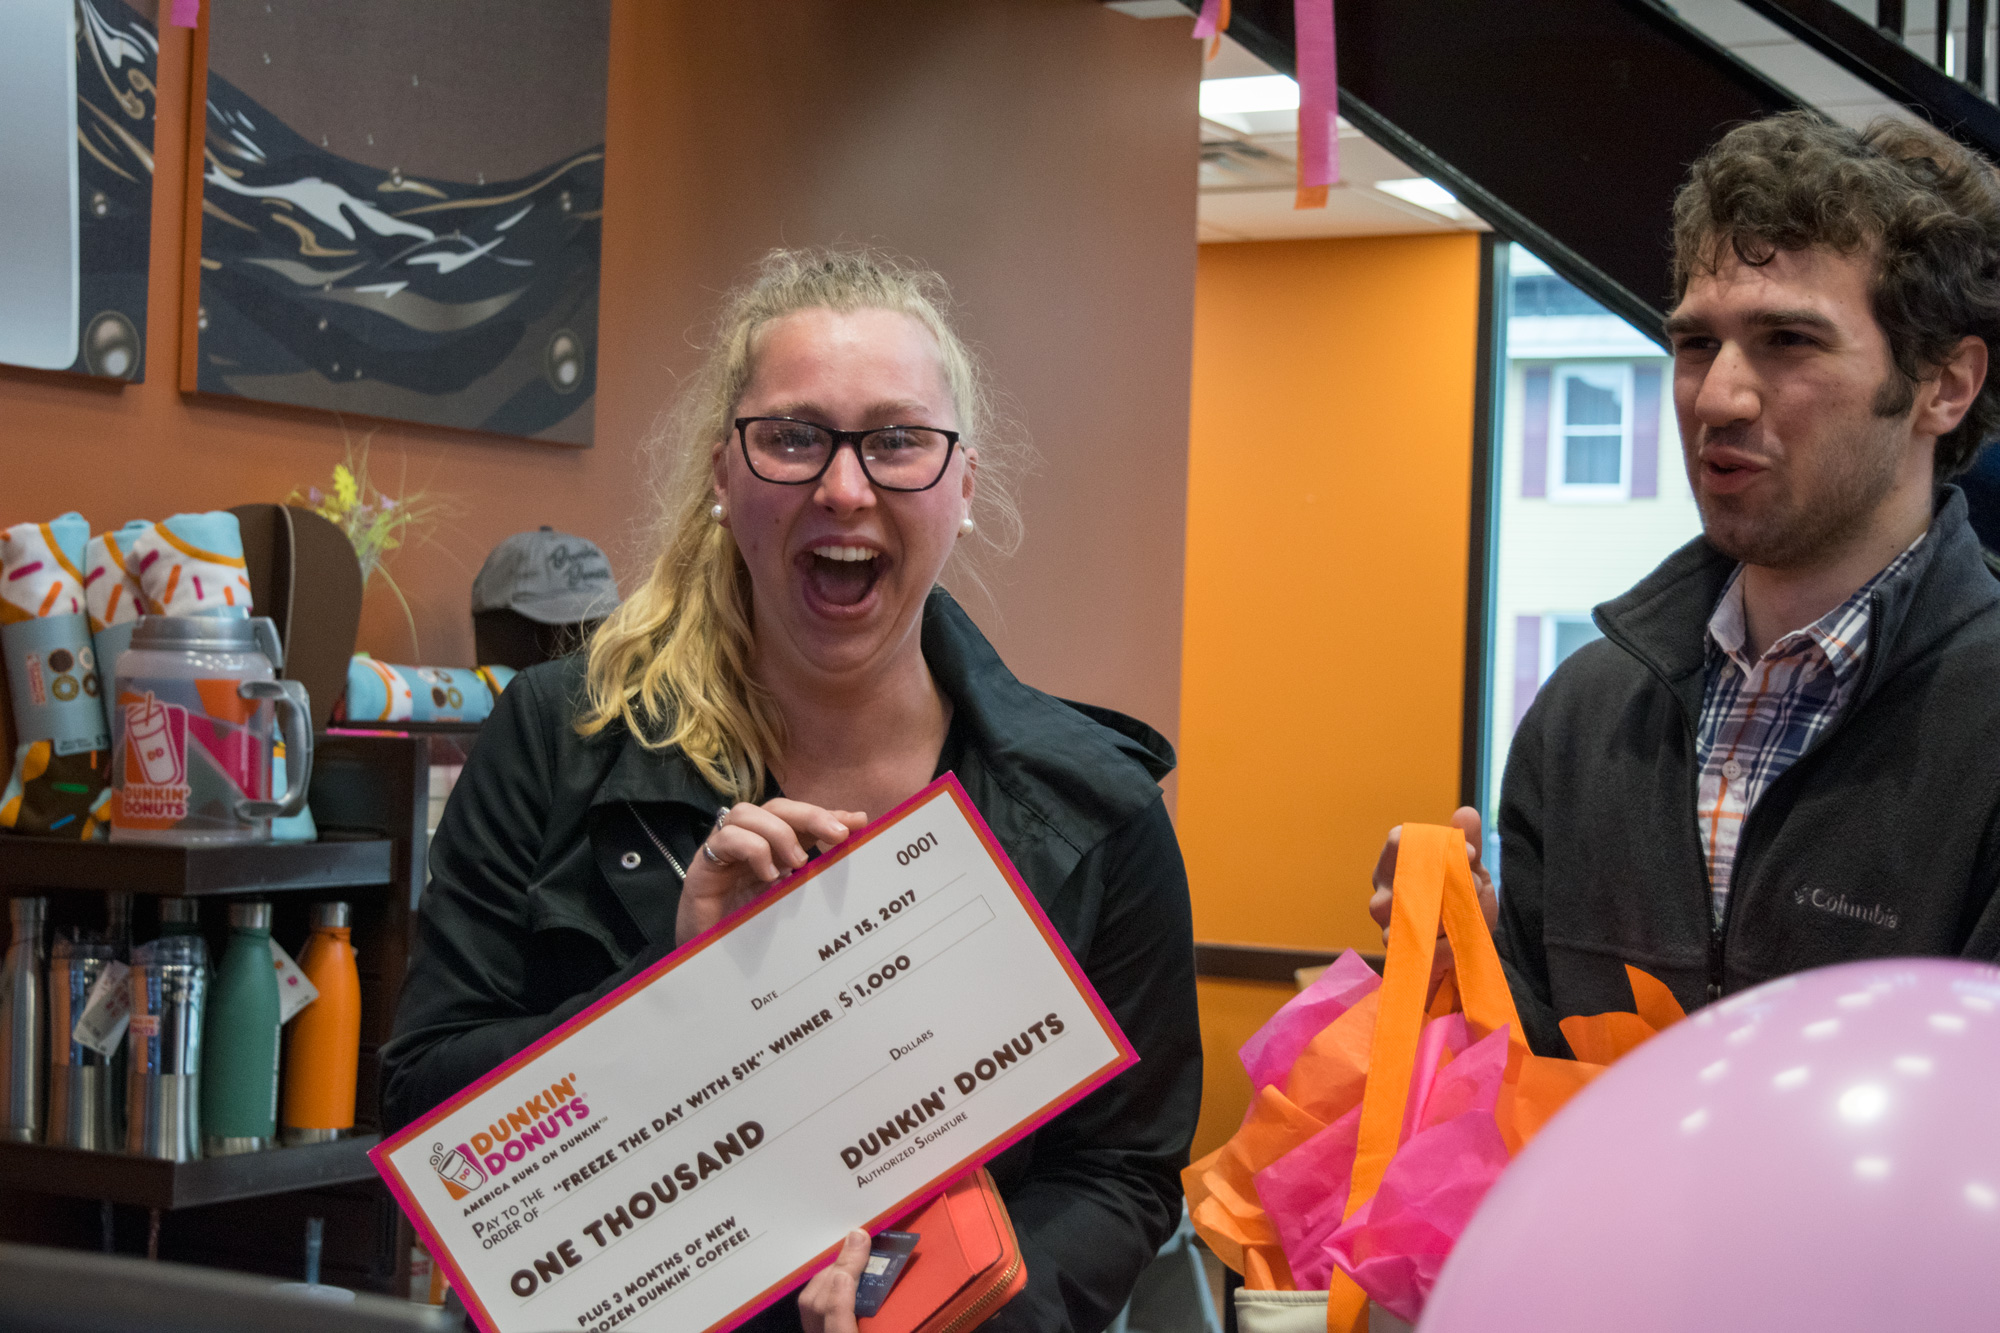 """Jennifer Leach, a senior at RPI, is surprised at the counter at the Dunkin' Donuts restaurant on Hoosick Street in Troy during their """"Freeze the Day with $1K"""" giveaway celebration on Monday, May 15. Jennifer is the recipient of $1,000, a three month supply of Frozen Dunkin' Coffee, and a special Freeze the Day themed prize pack. The """"Freeze the Day with $1k"""" program celebrates the new Frozen Dunkin' Coffee, a permanent menu item introduced nationally in May."""